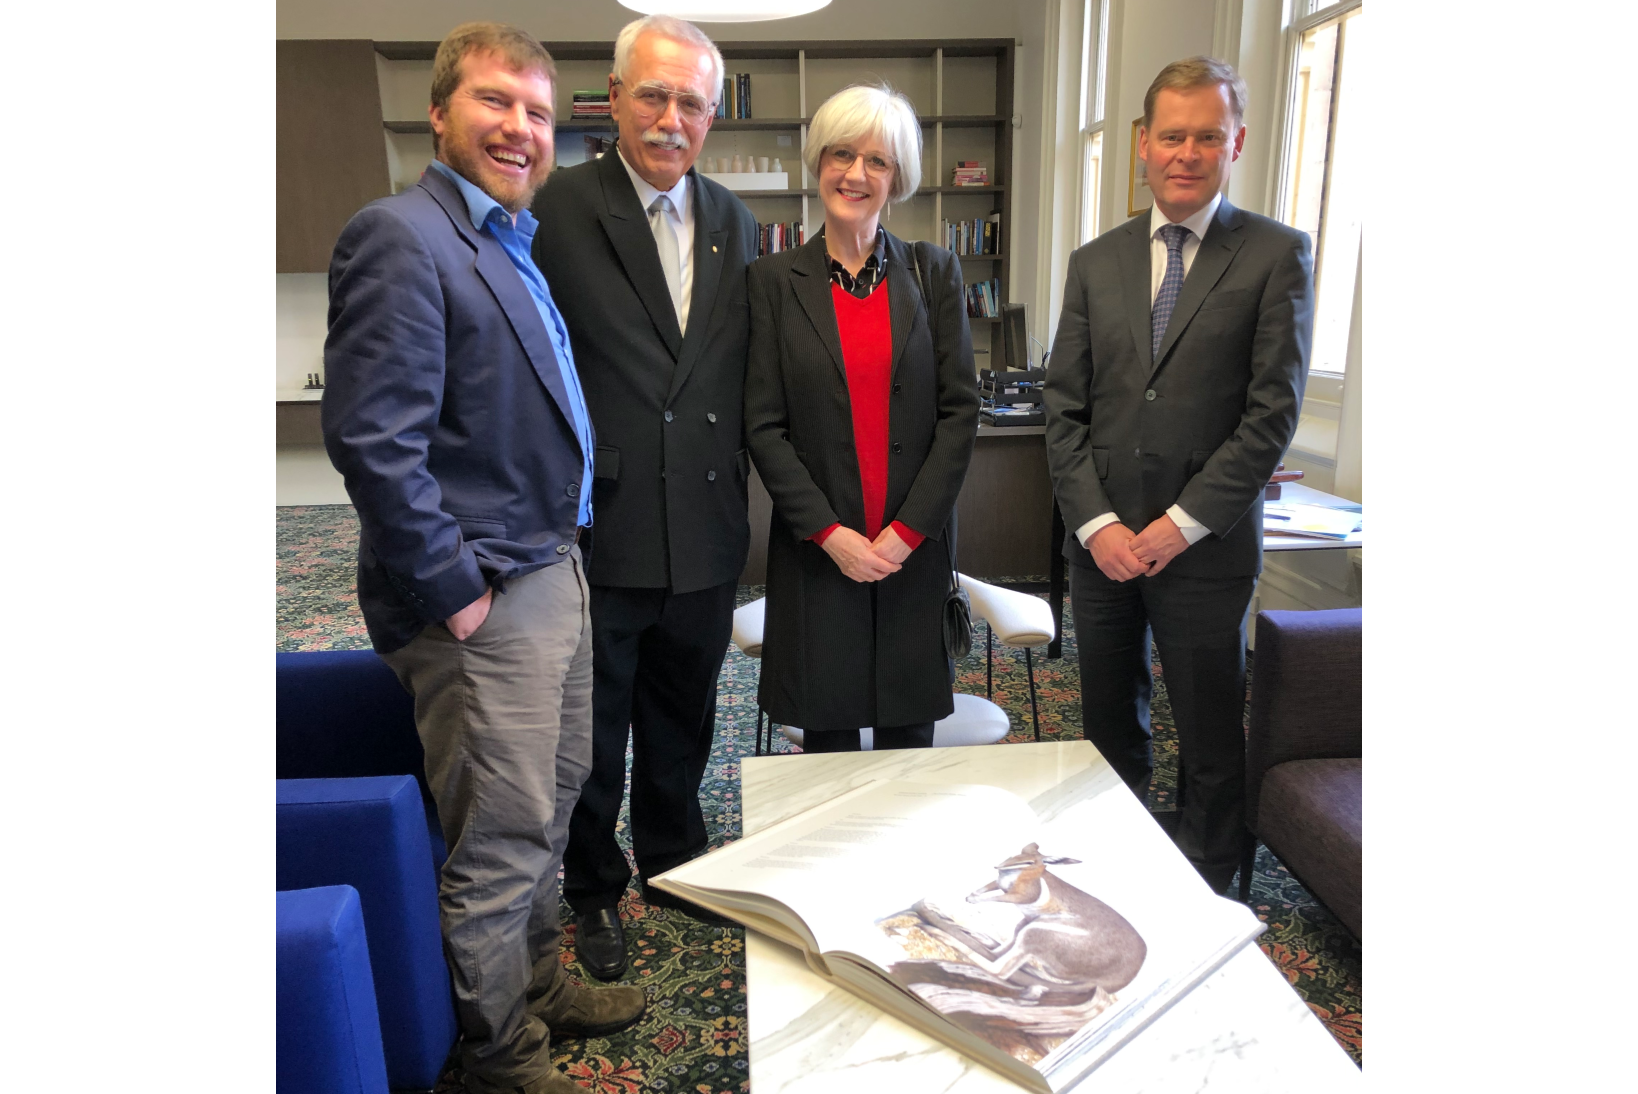 Professor Kristofer Helgen, Philip Wollen OAM, University Librarian Teresa Chitty, and University Vice-Chancellor Peter Rathjen